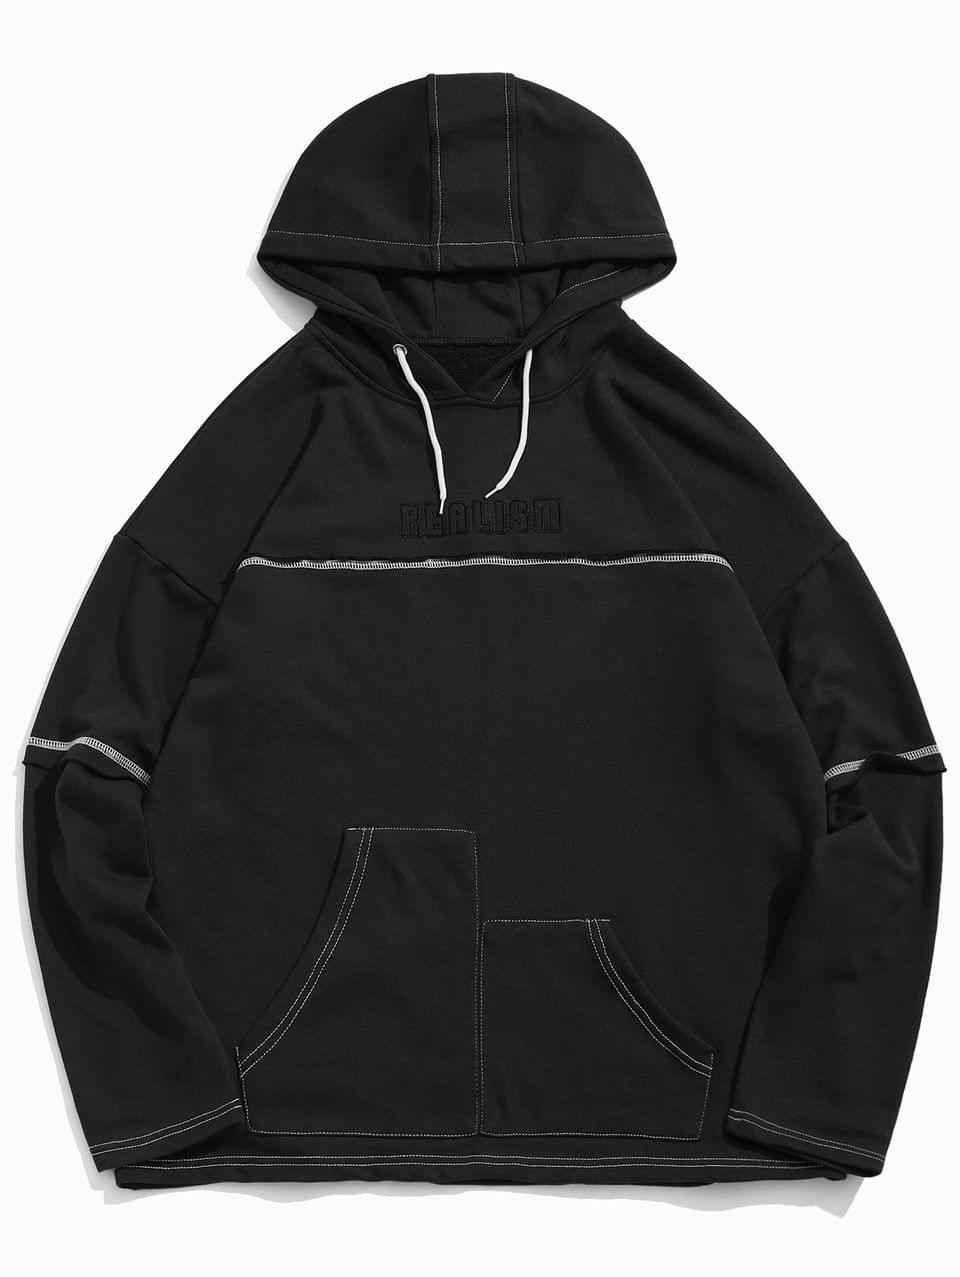 Men's Realism Graphic Creative Pocket Drop Shoulder Hoodie - Black Xl